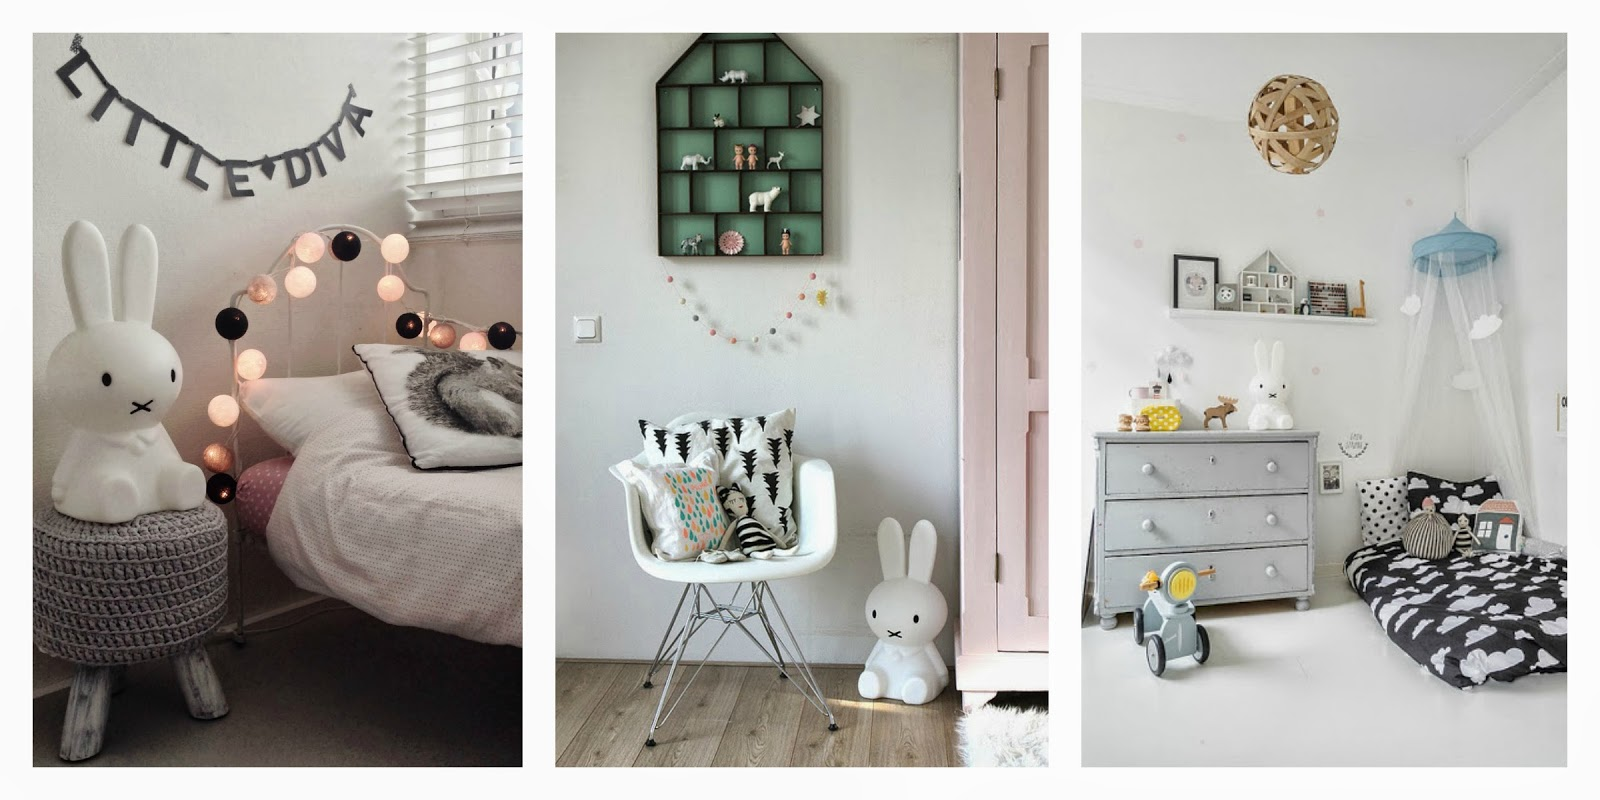 The 5 coolest bedroom items every kid needs according to for Best home decor boards on pinterest